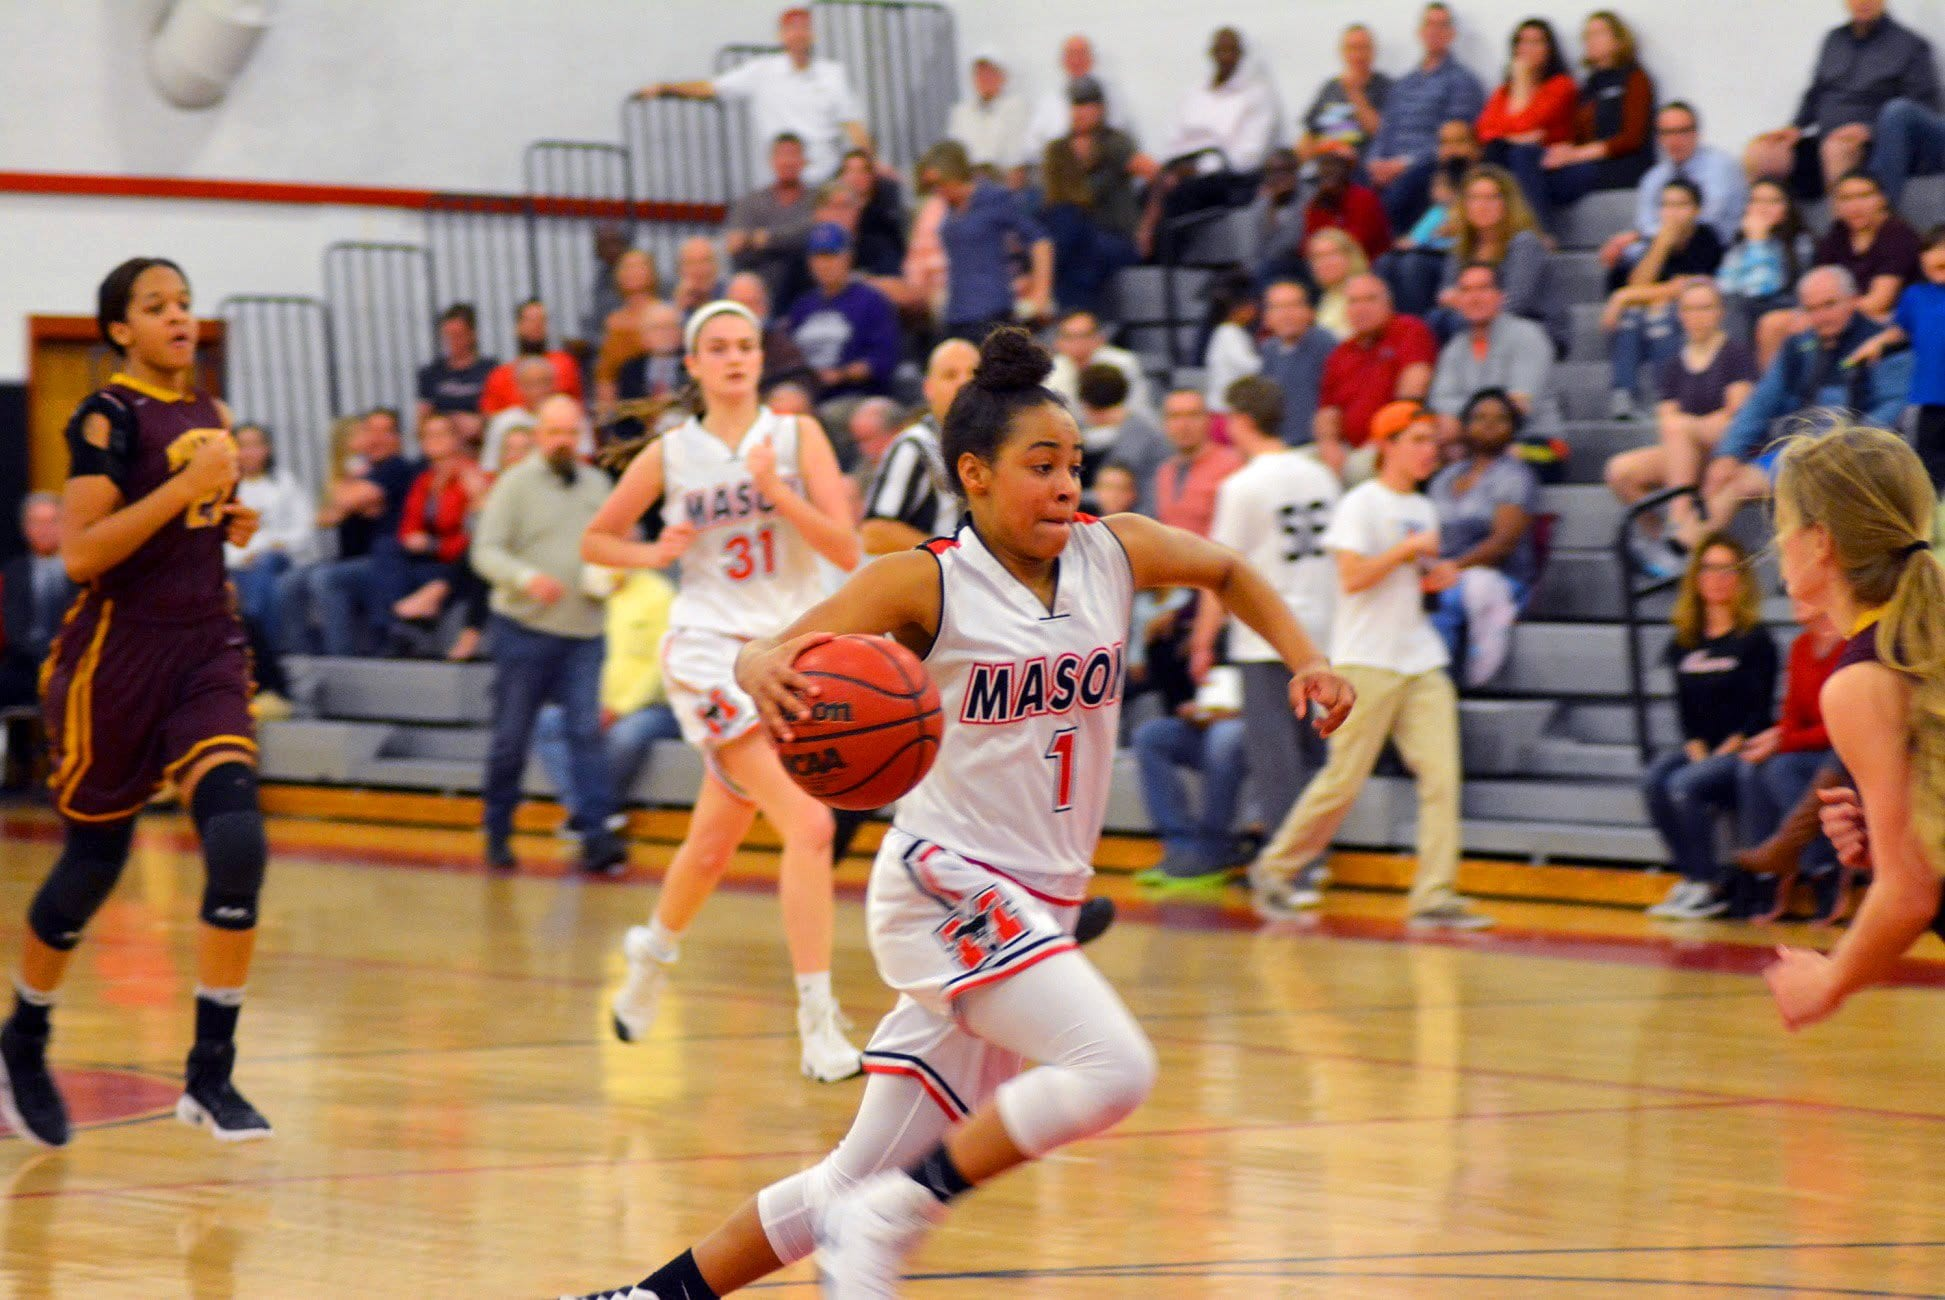 Mason'd Nicole Bloomgarden drives to the basket in the Mustang's home semifinal loss to Nottoway High School last Thursday. (Photo: Carol Sly)